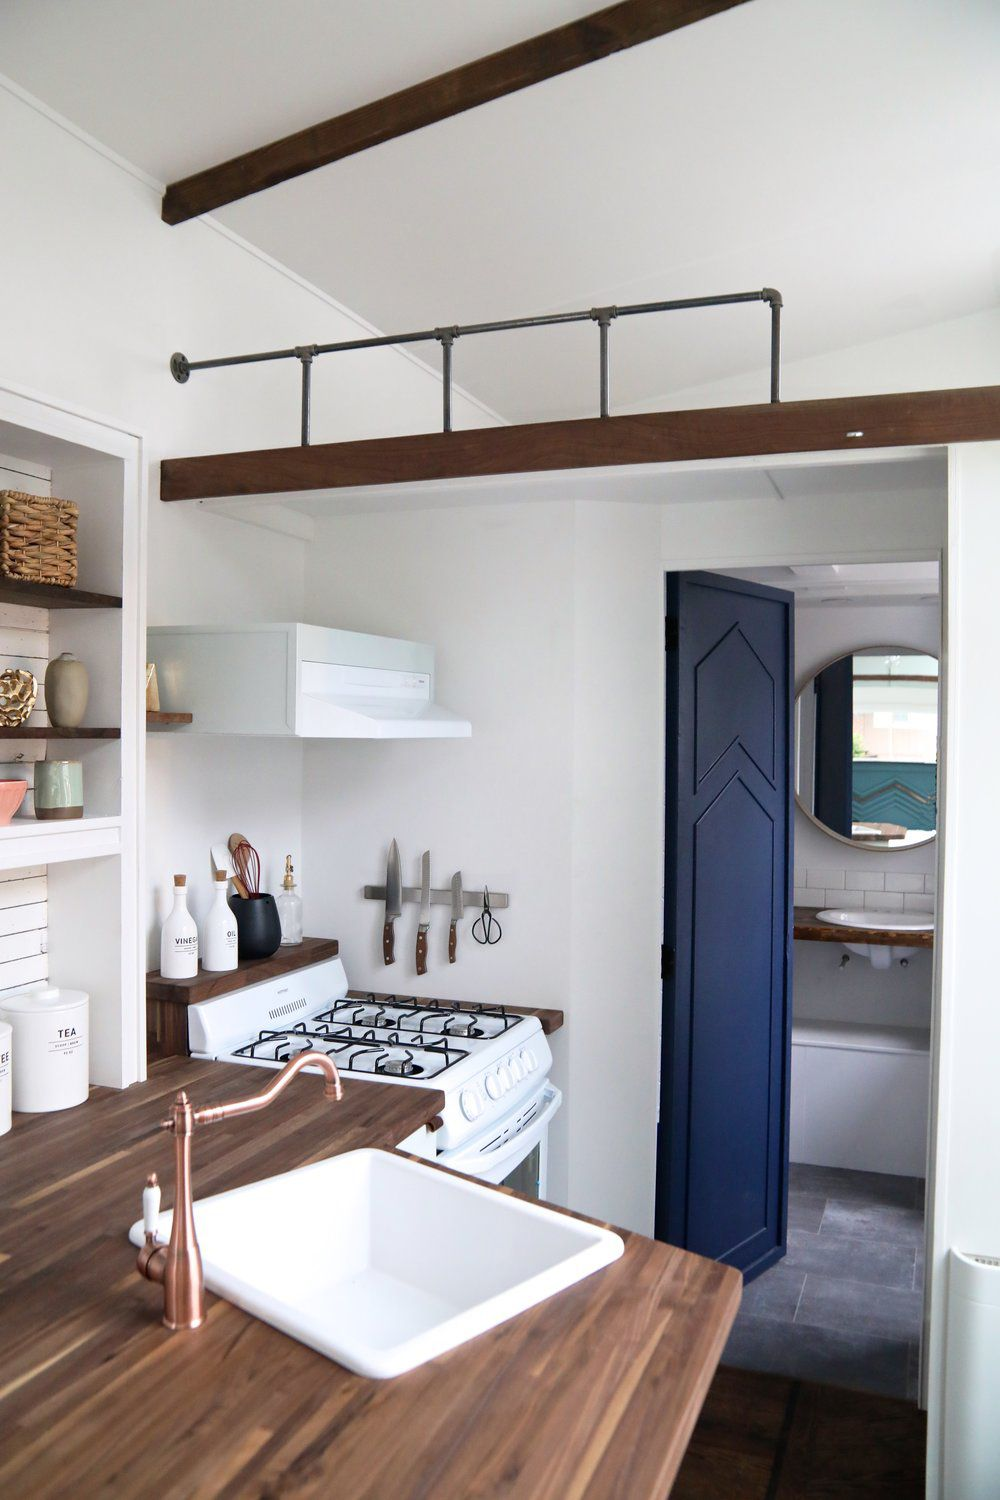 Loft above bedroom  Pacific Getaway by Handcrafted Movement  Lofts Kitchens and Tiny